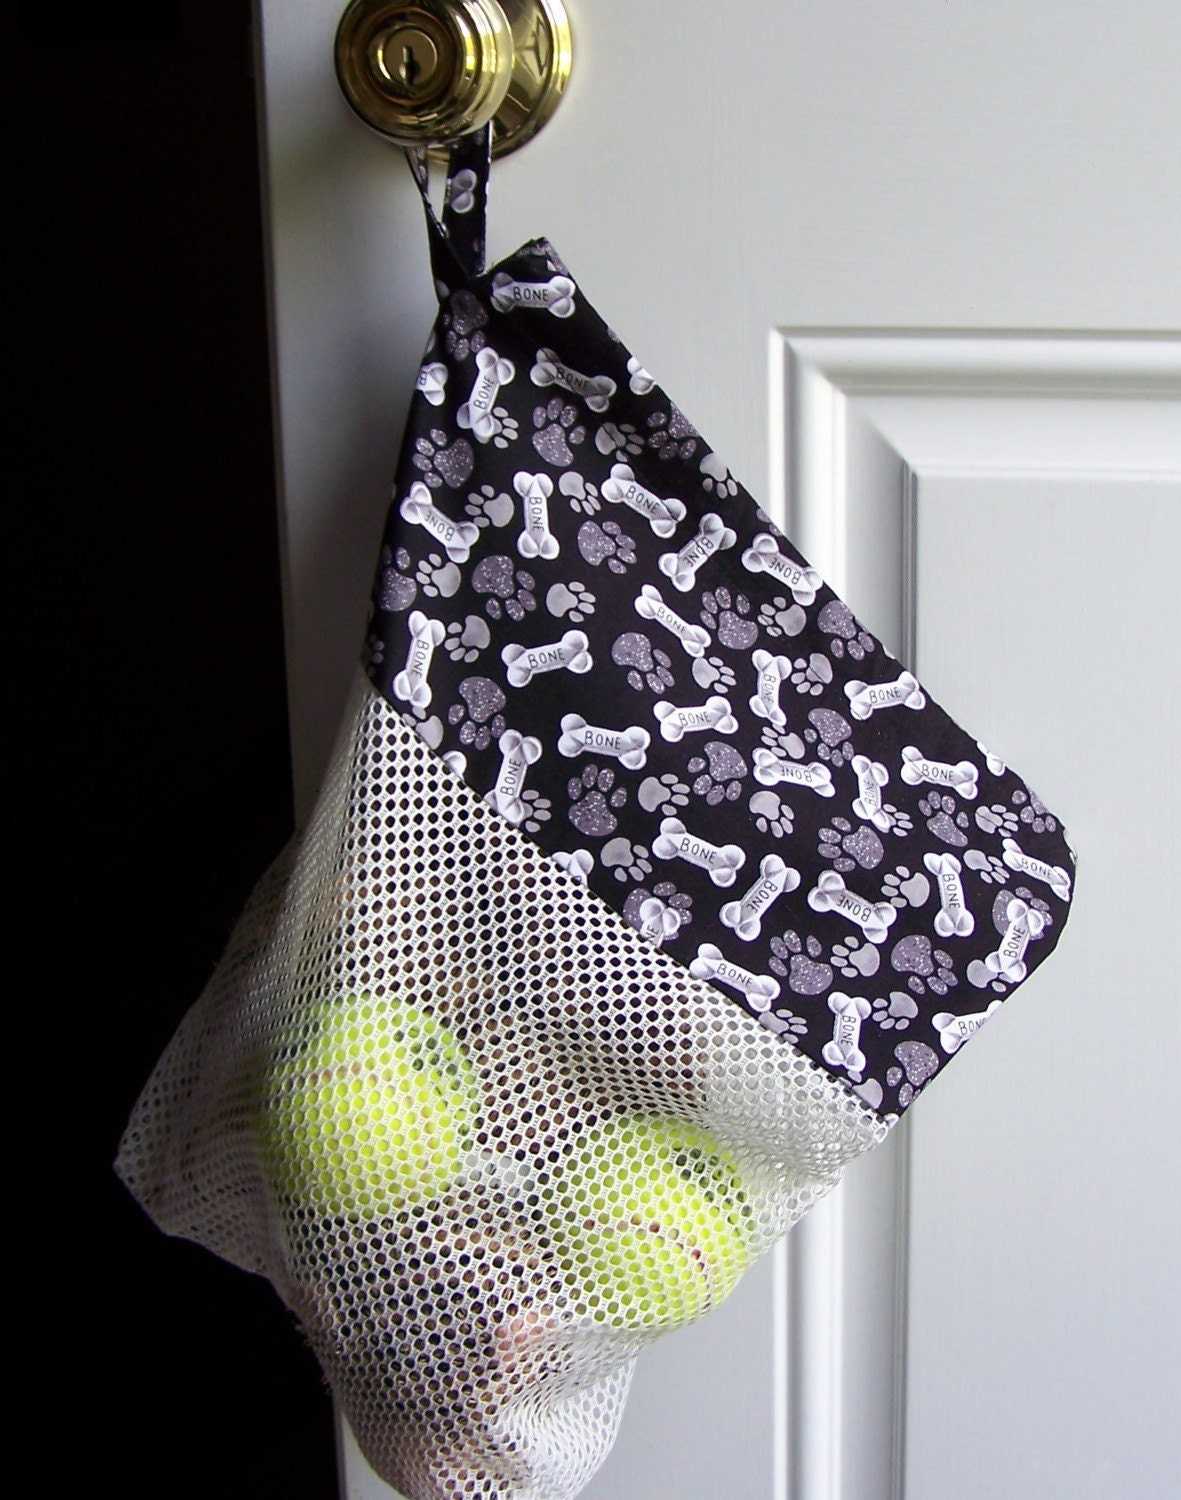 Stash Bag Giveaway and This and That on the Net!